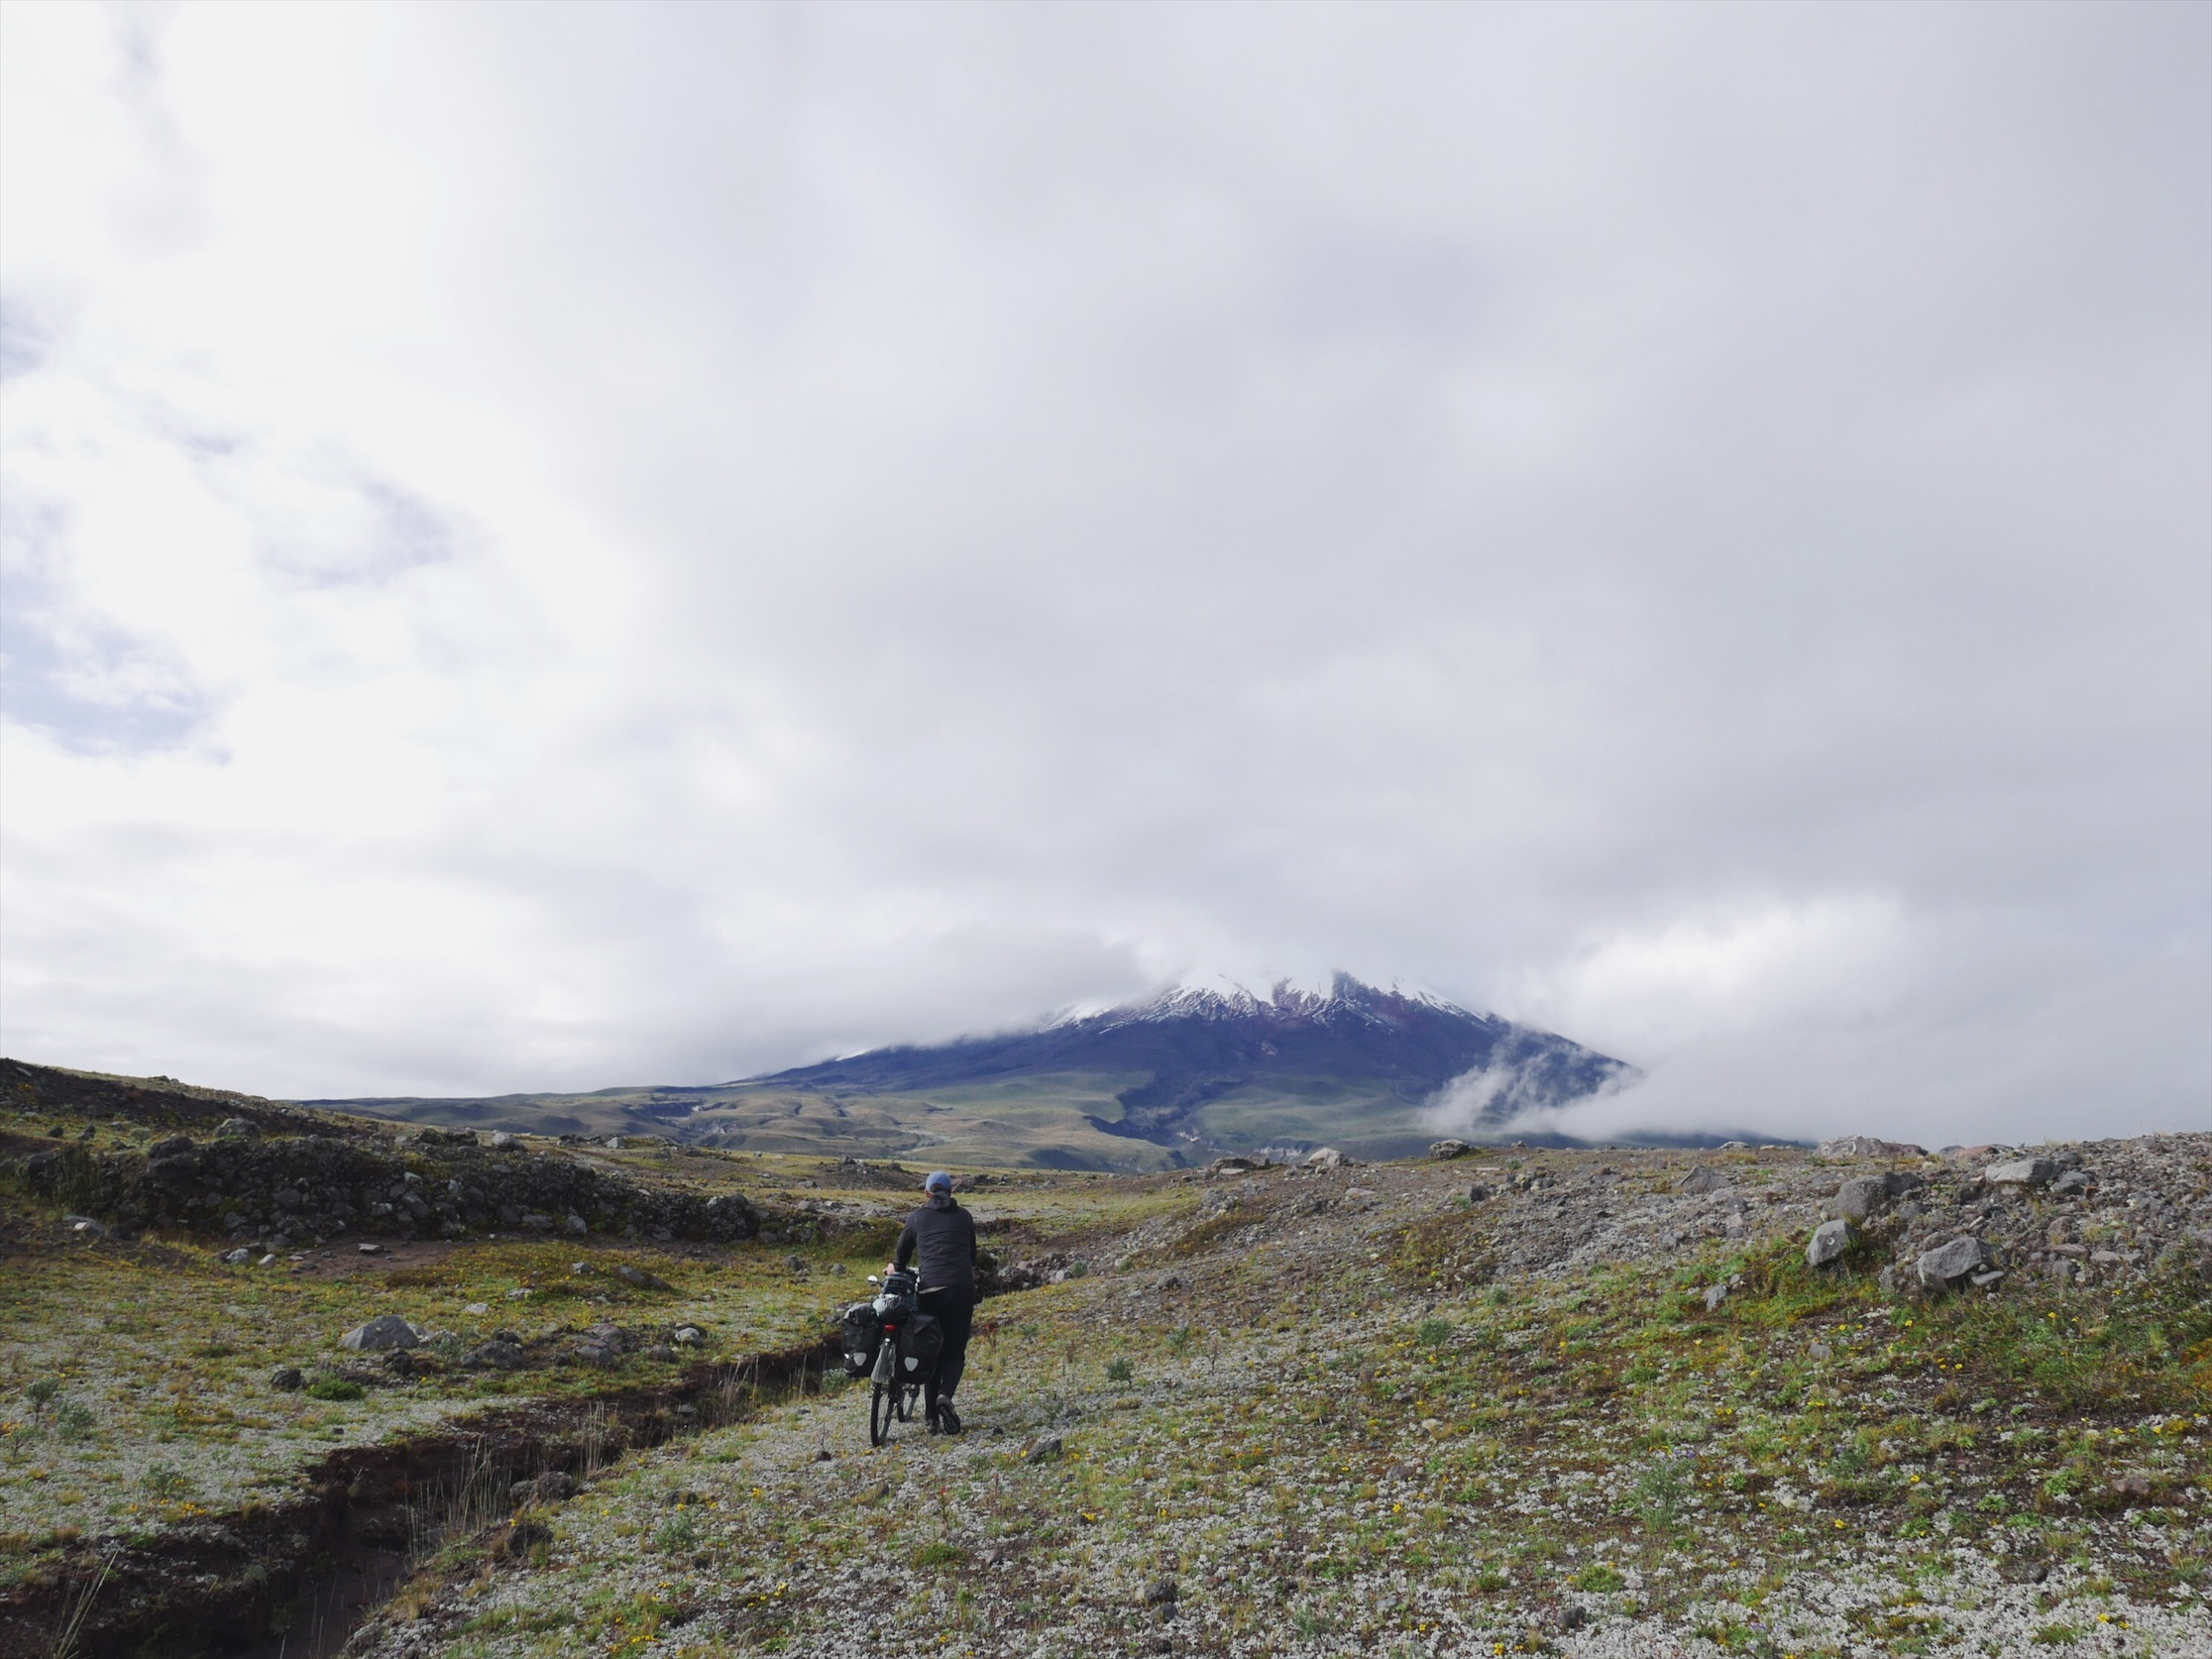 Tundra, erosion paths and eruption blasted boulders. Cotopaxi is otherworldly cool.